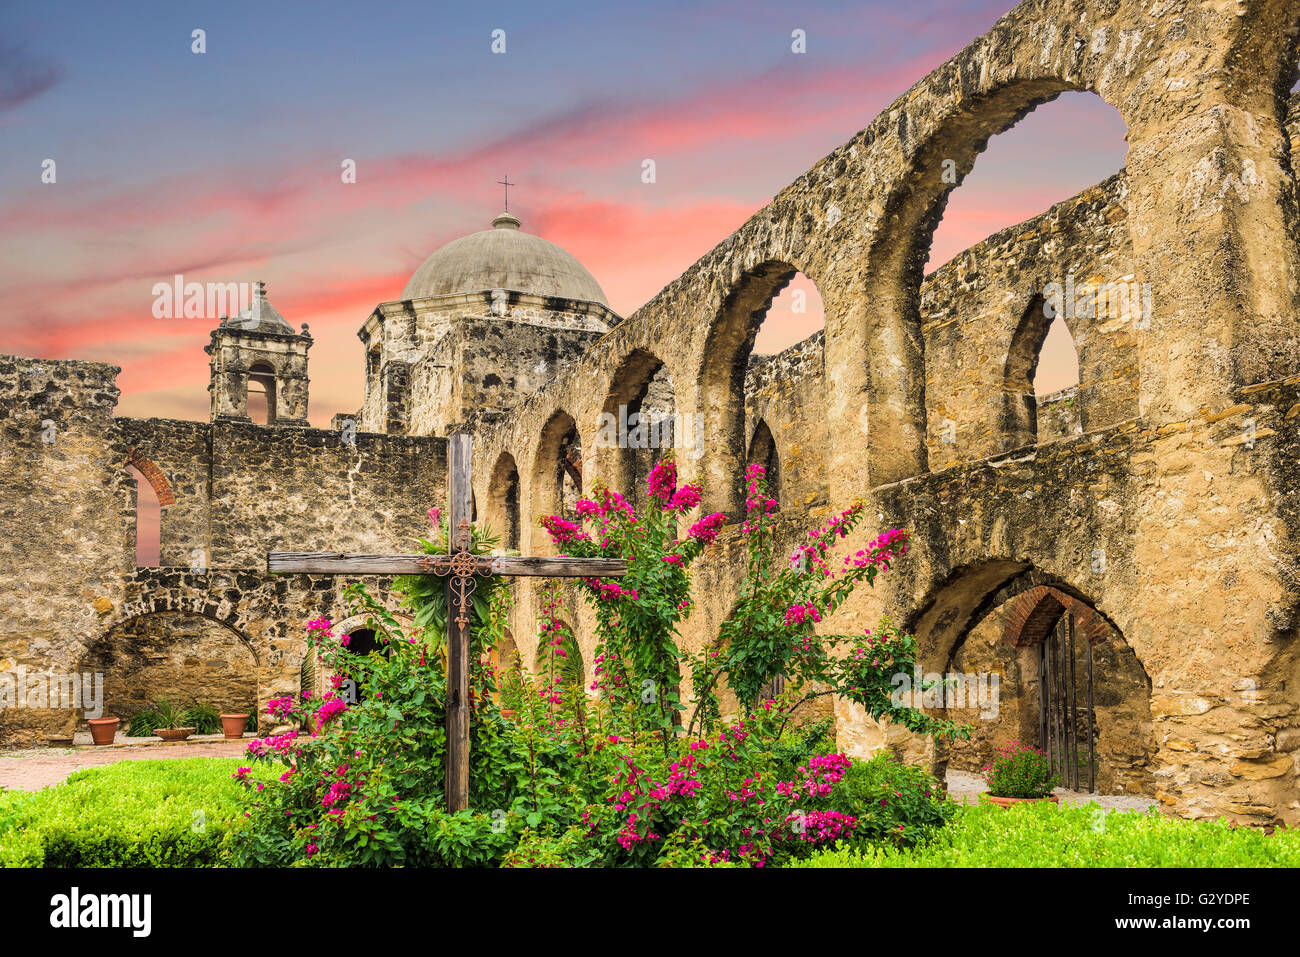 Mission San Jose in San Antonio, Texas, USA. - Stock Image